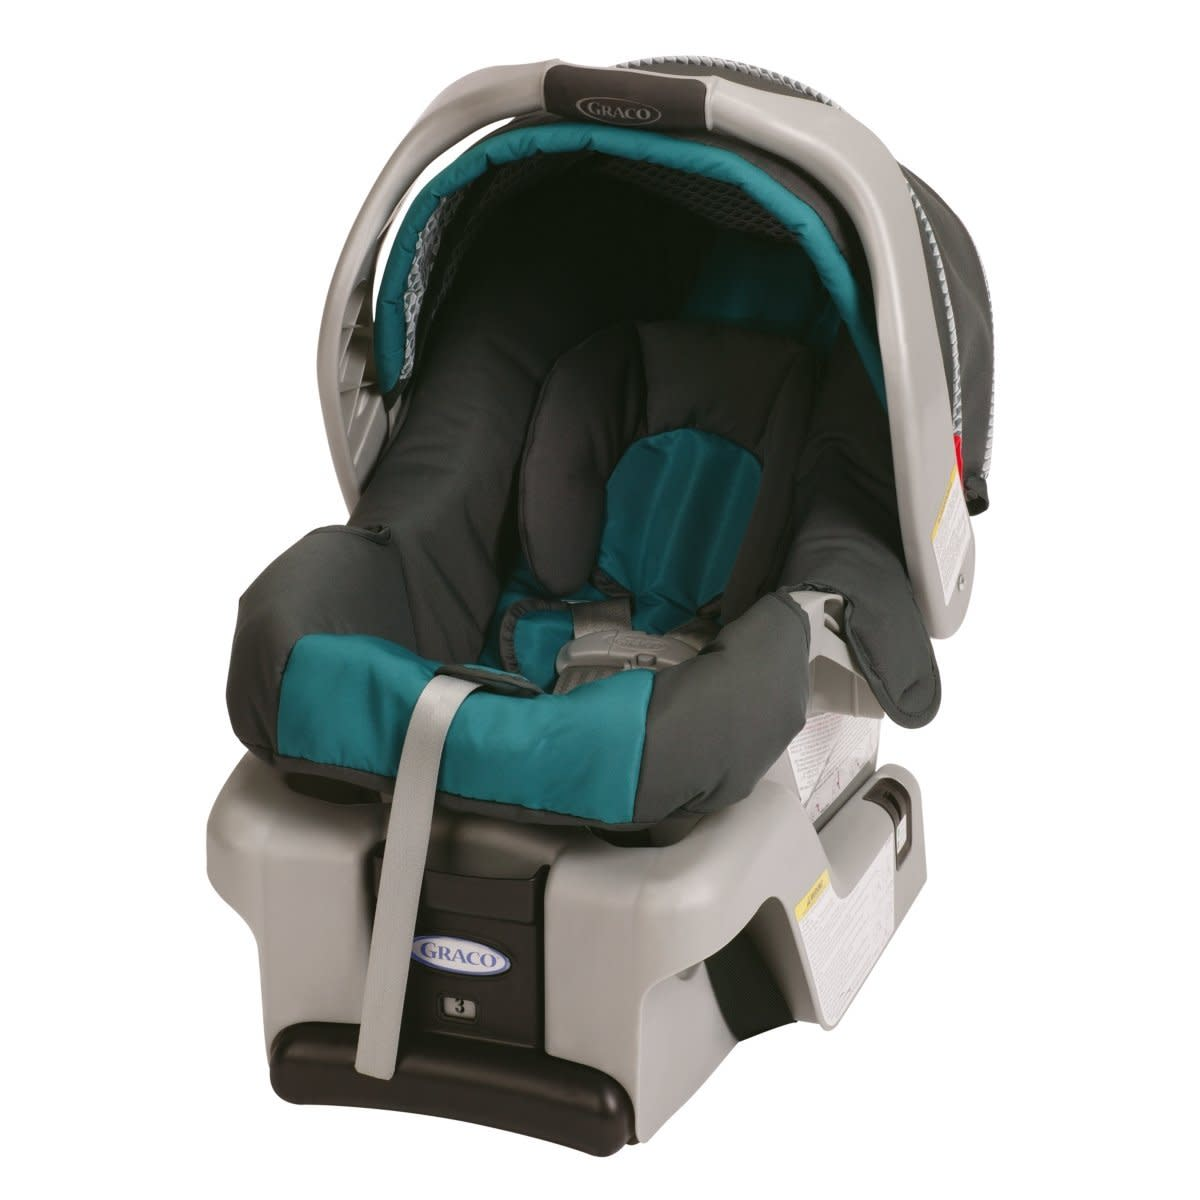 The Graco Snugride Classic Connect 30